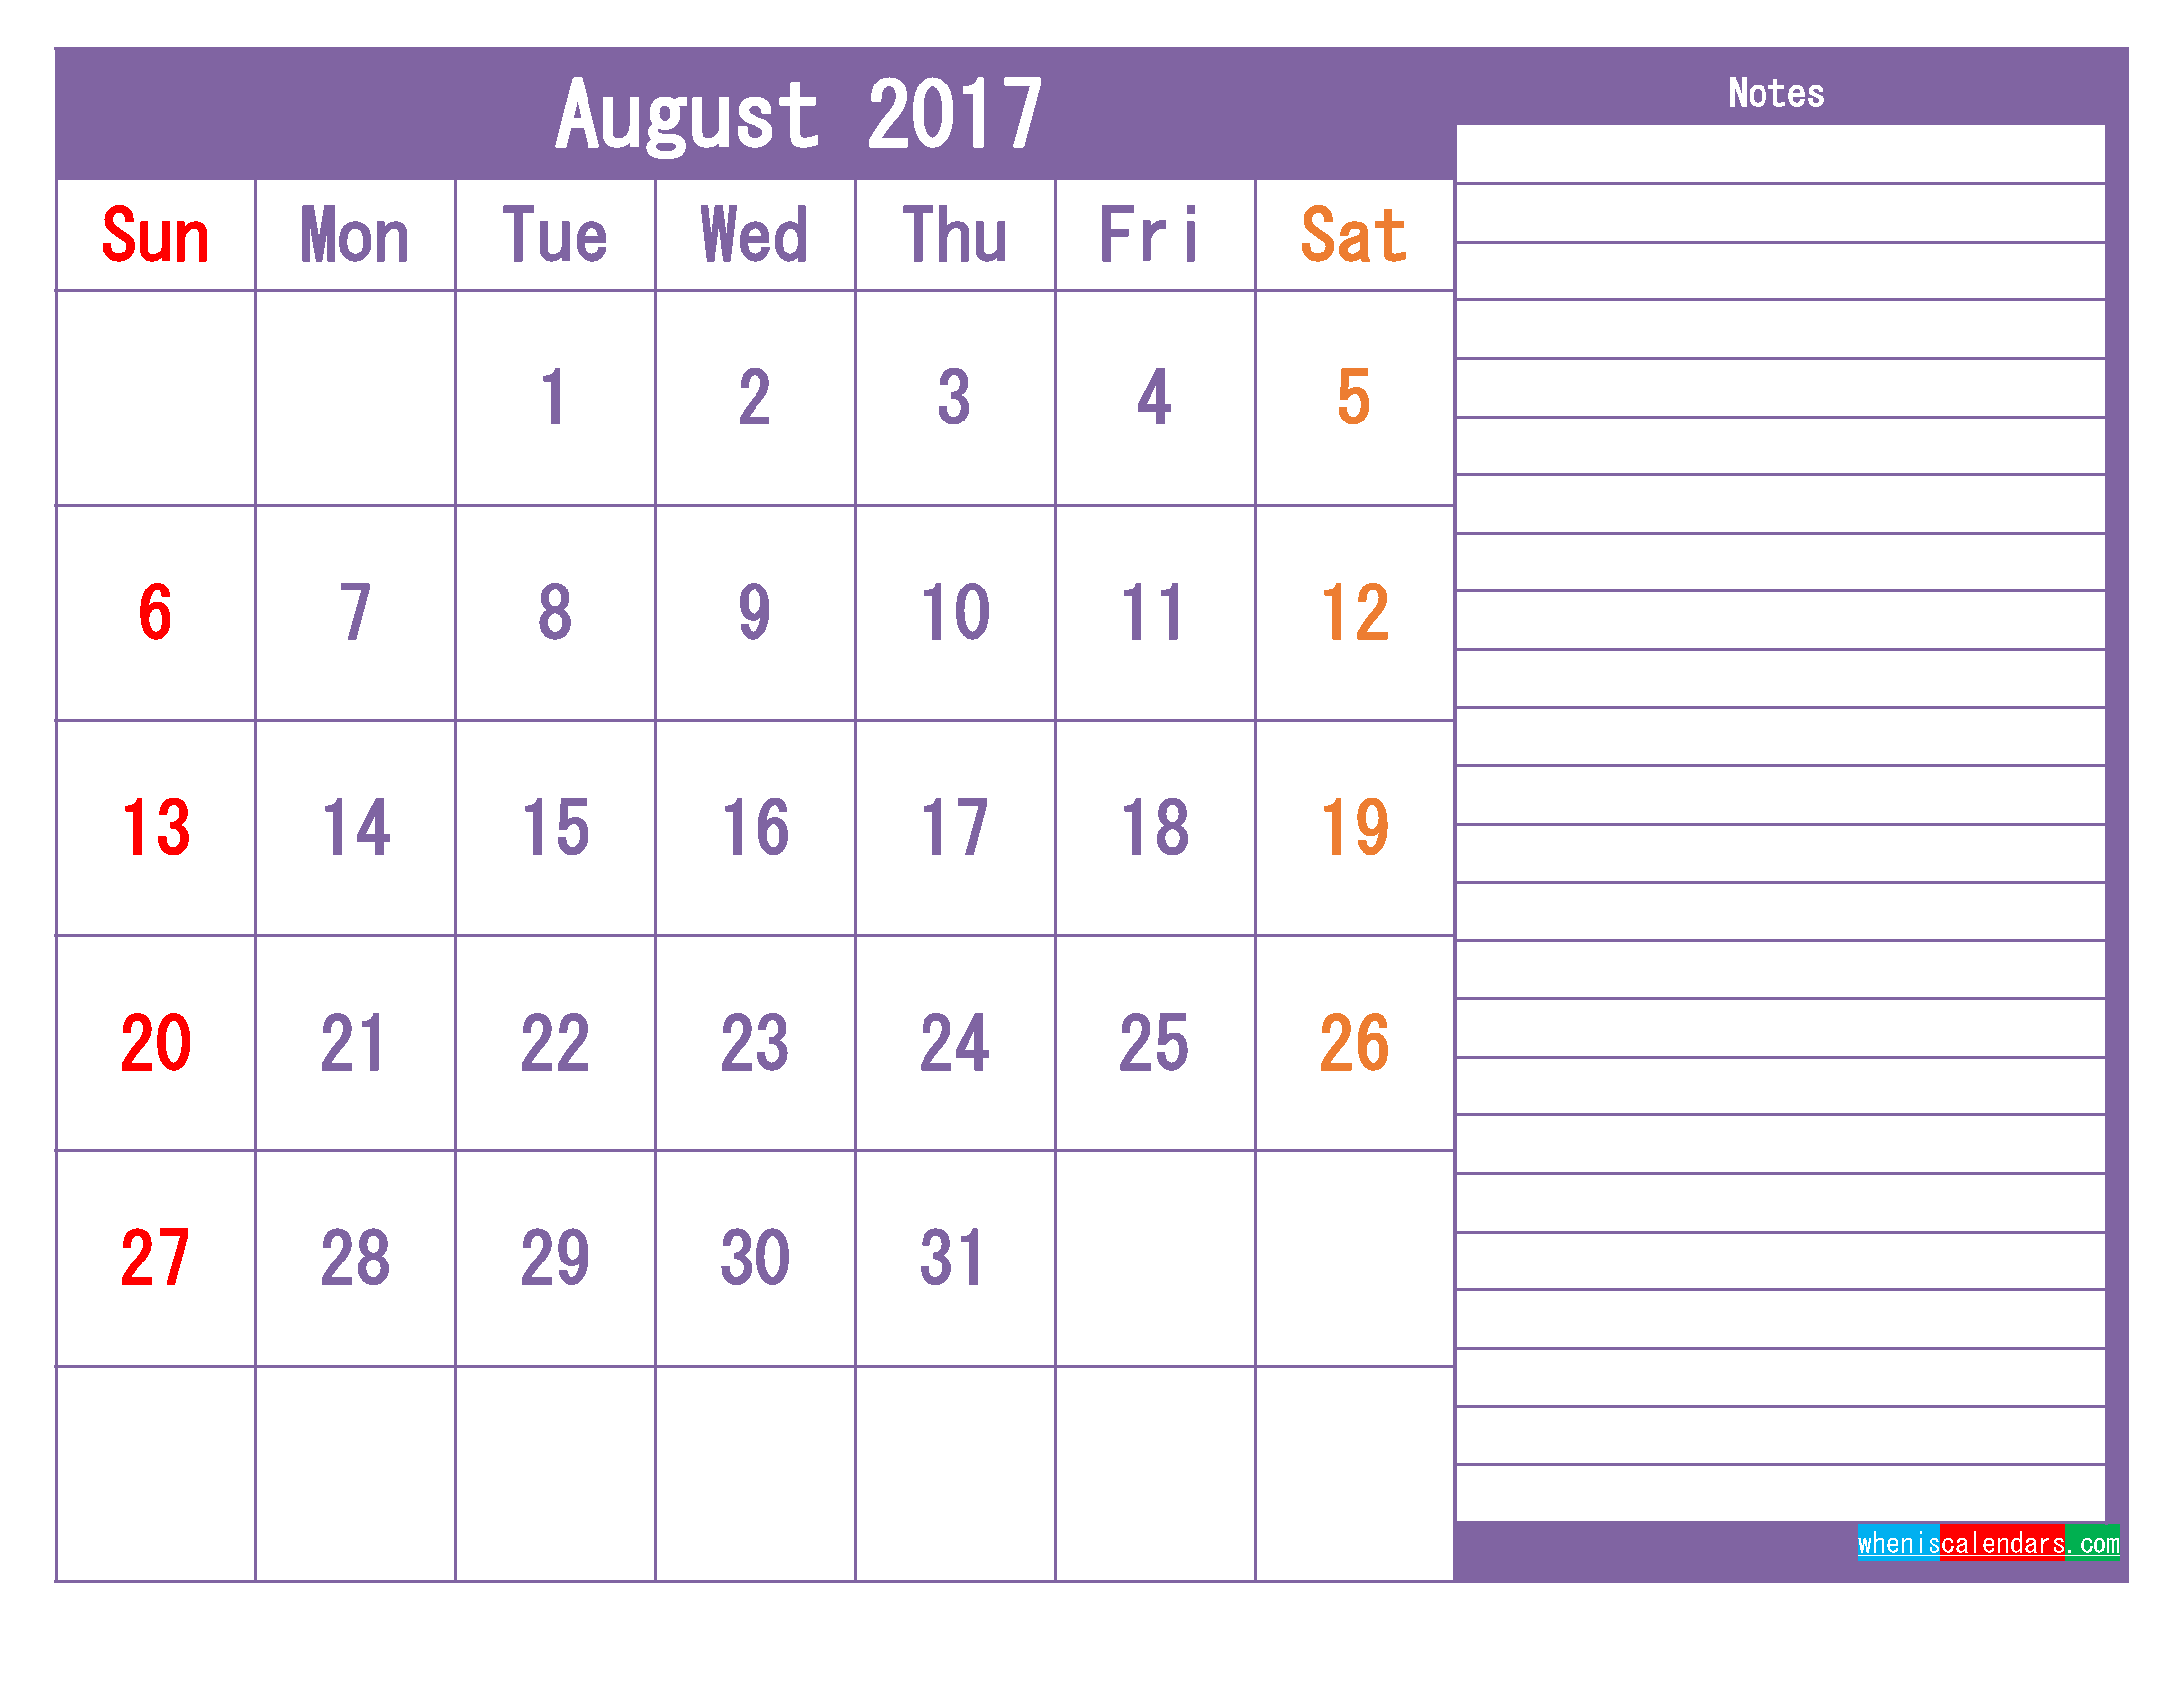 August 2017 Printable Calendar Template as PDF and PNG